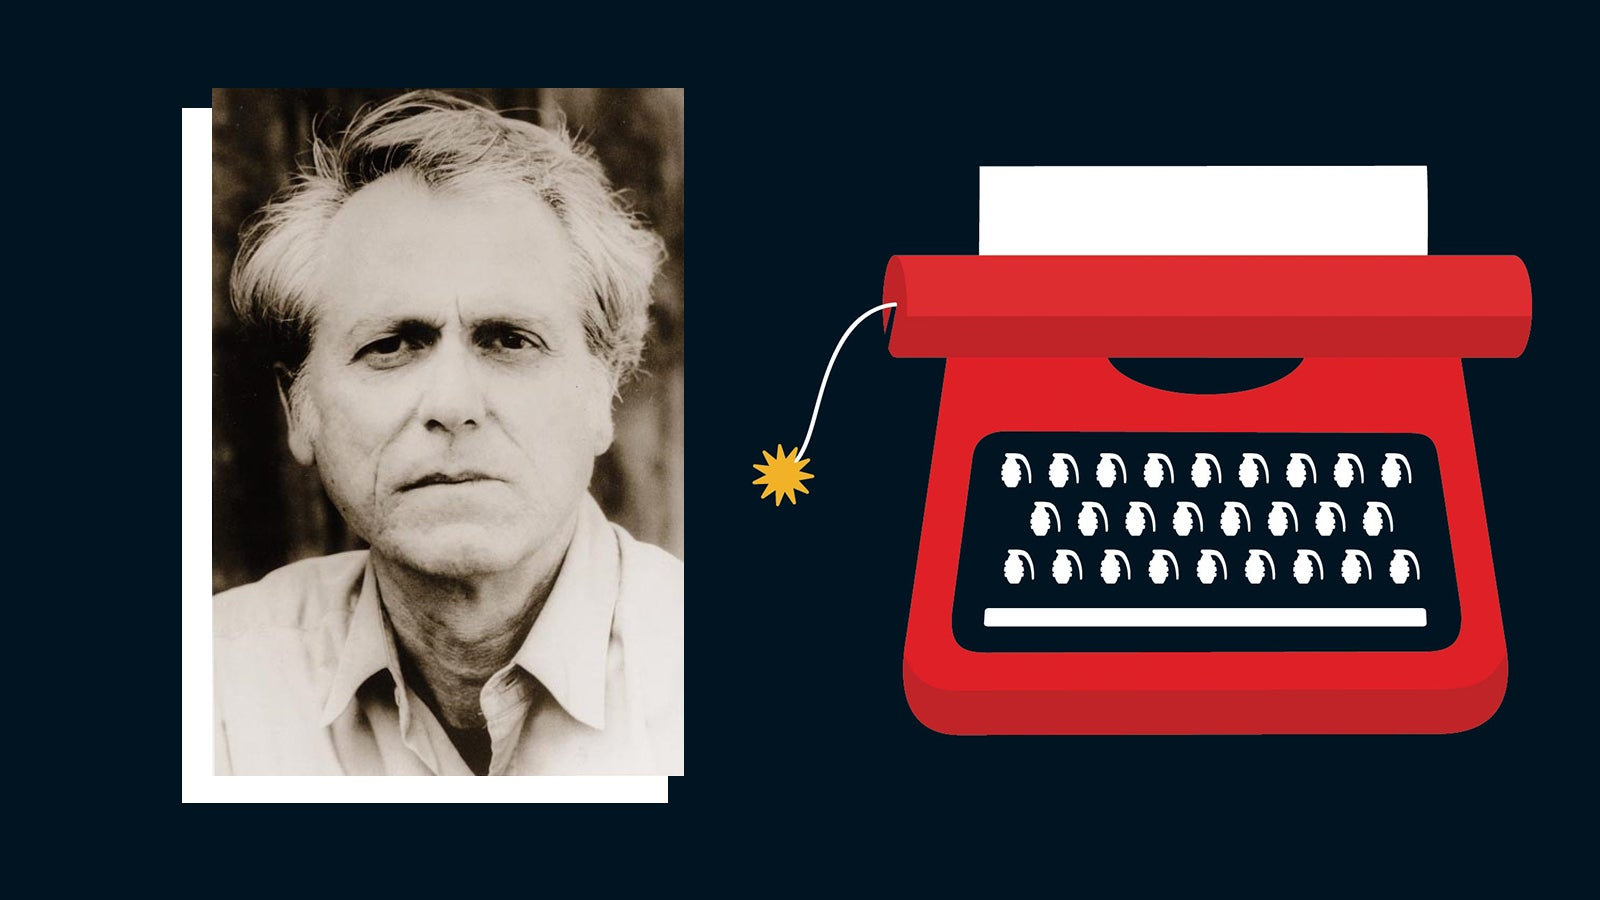 A black and white photograph of author Don DeLillo next to a red illustration of a typewriter